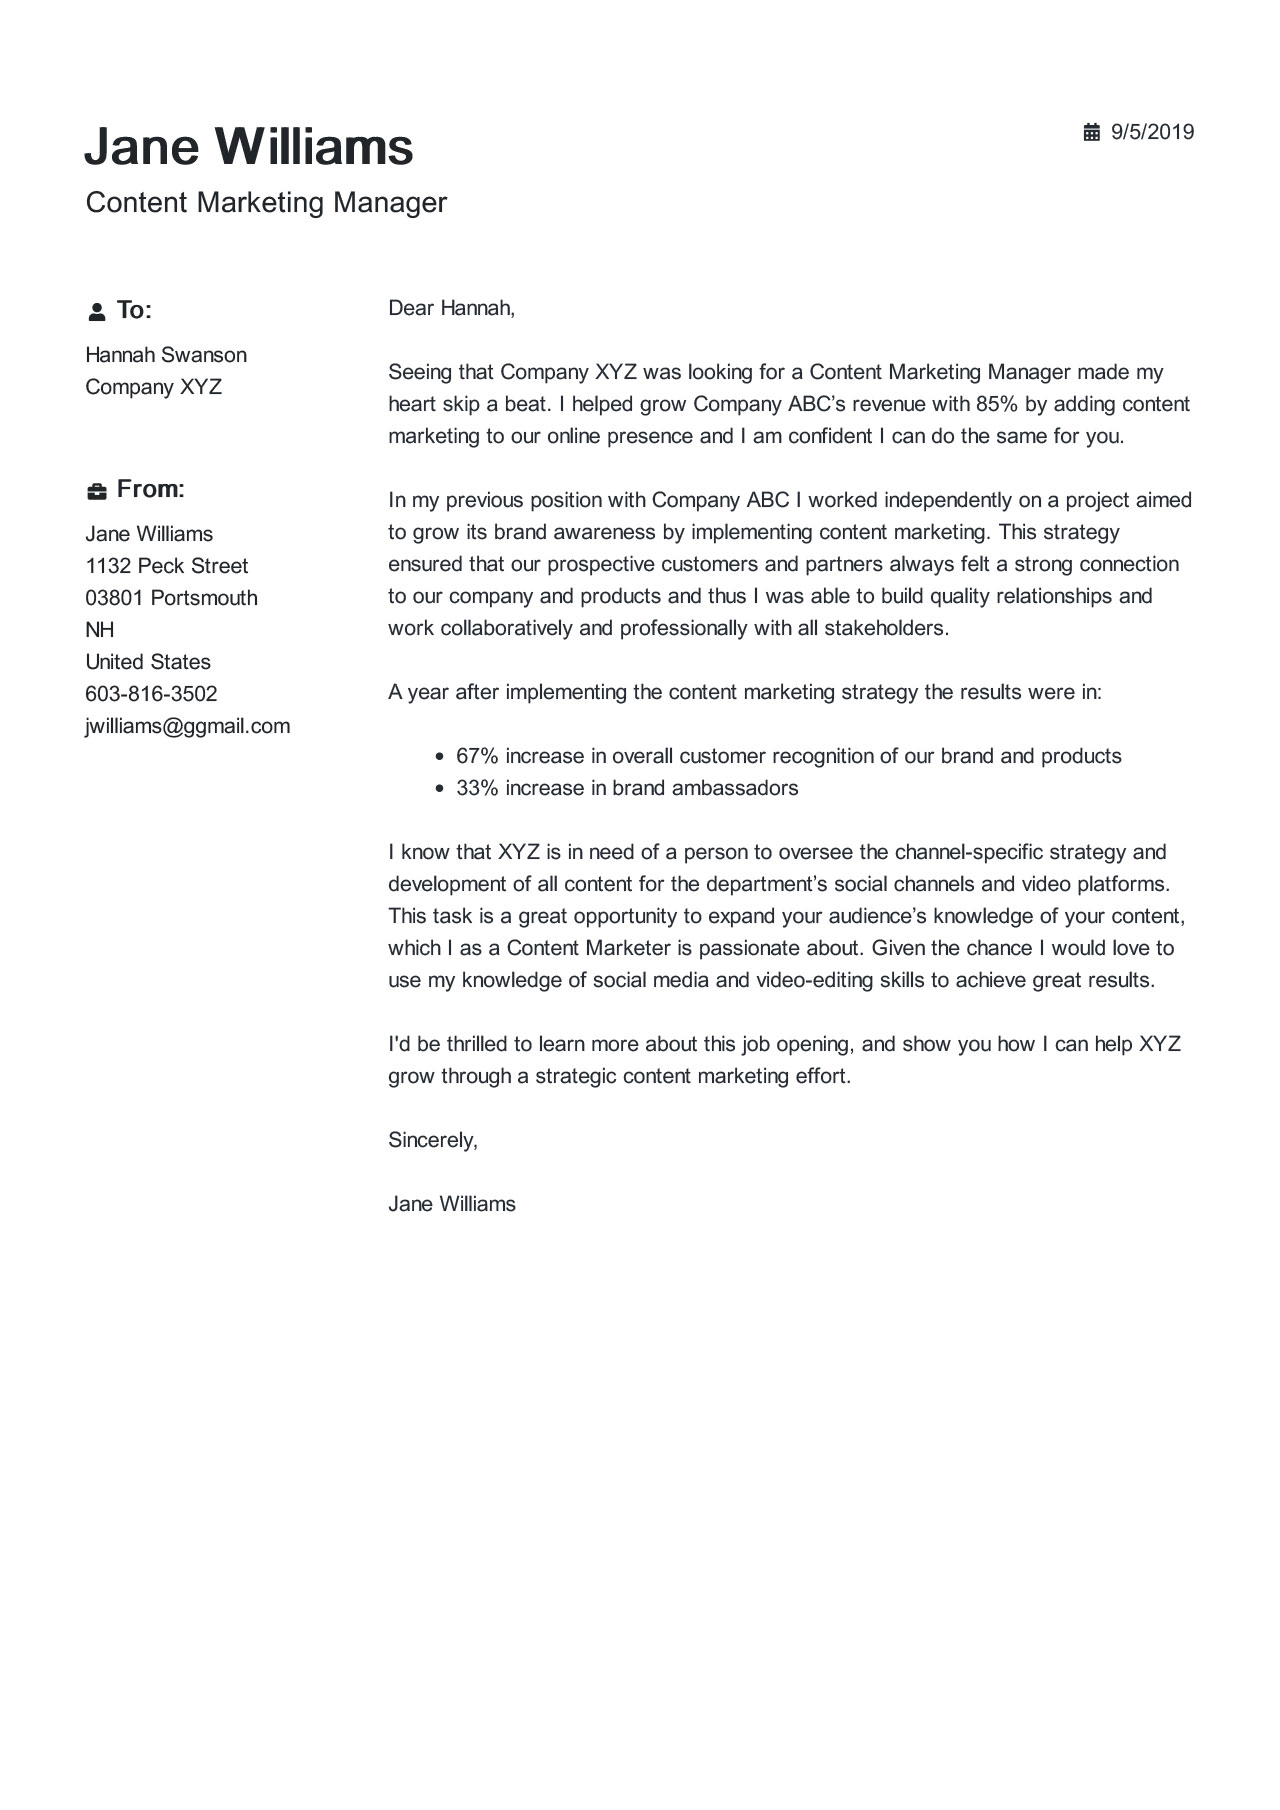 Content Marketing Manager Cover Letter Example